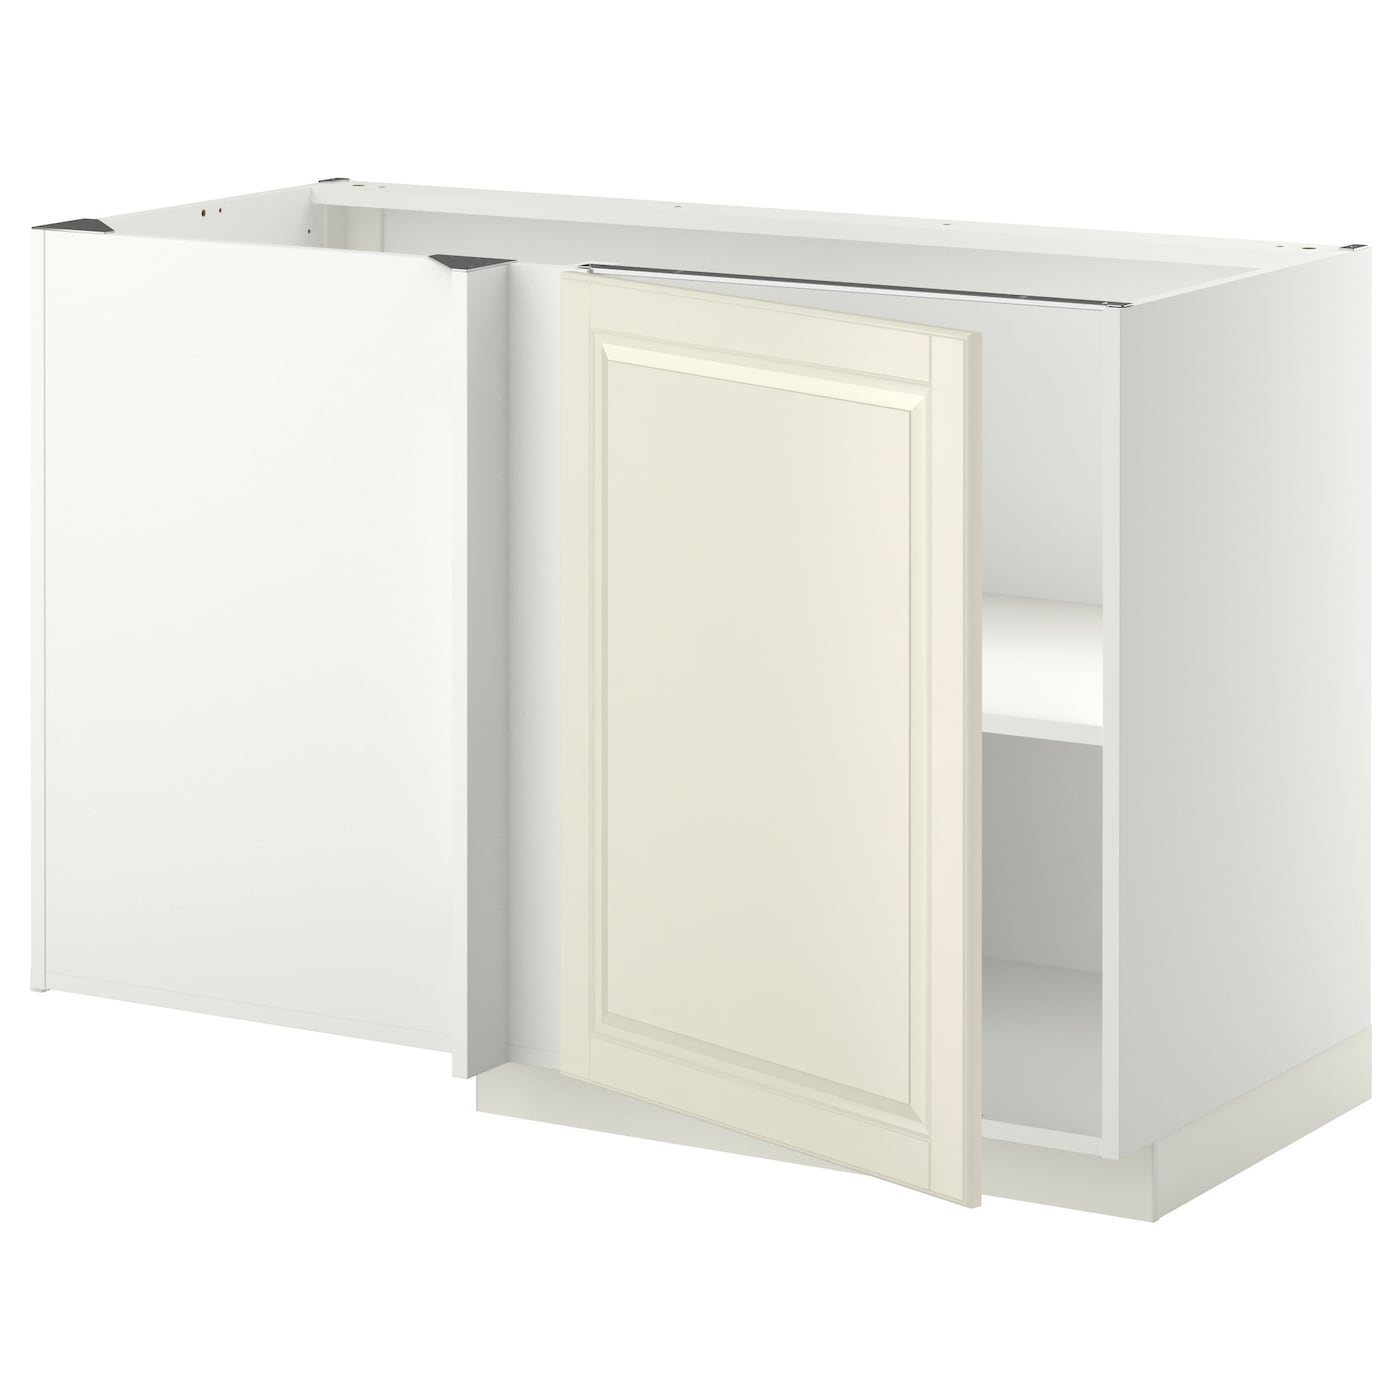 Metod corner base cabinet with shelf white bodbyn off - Ikea mobile angolare ...